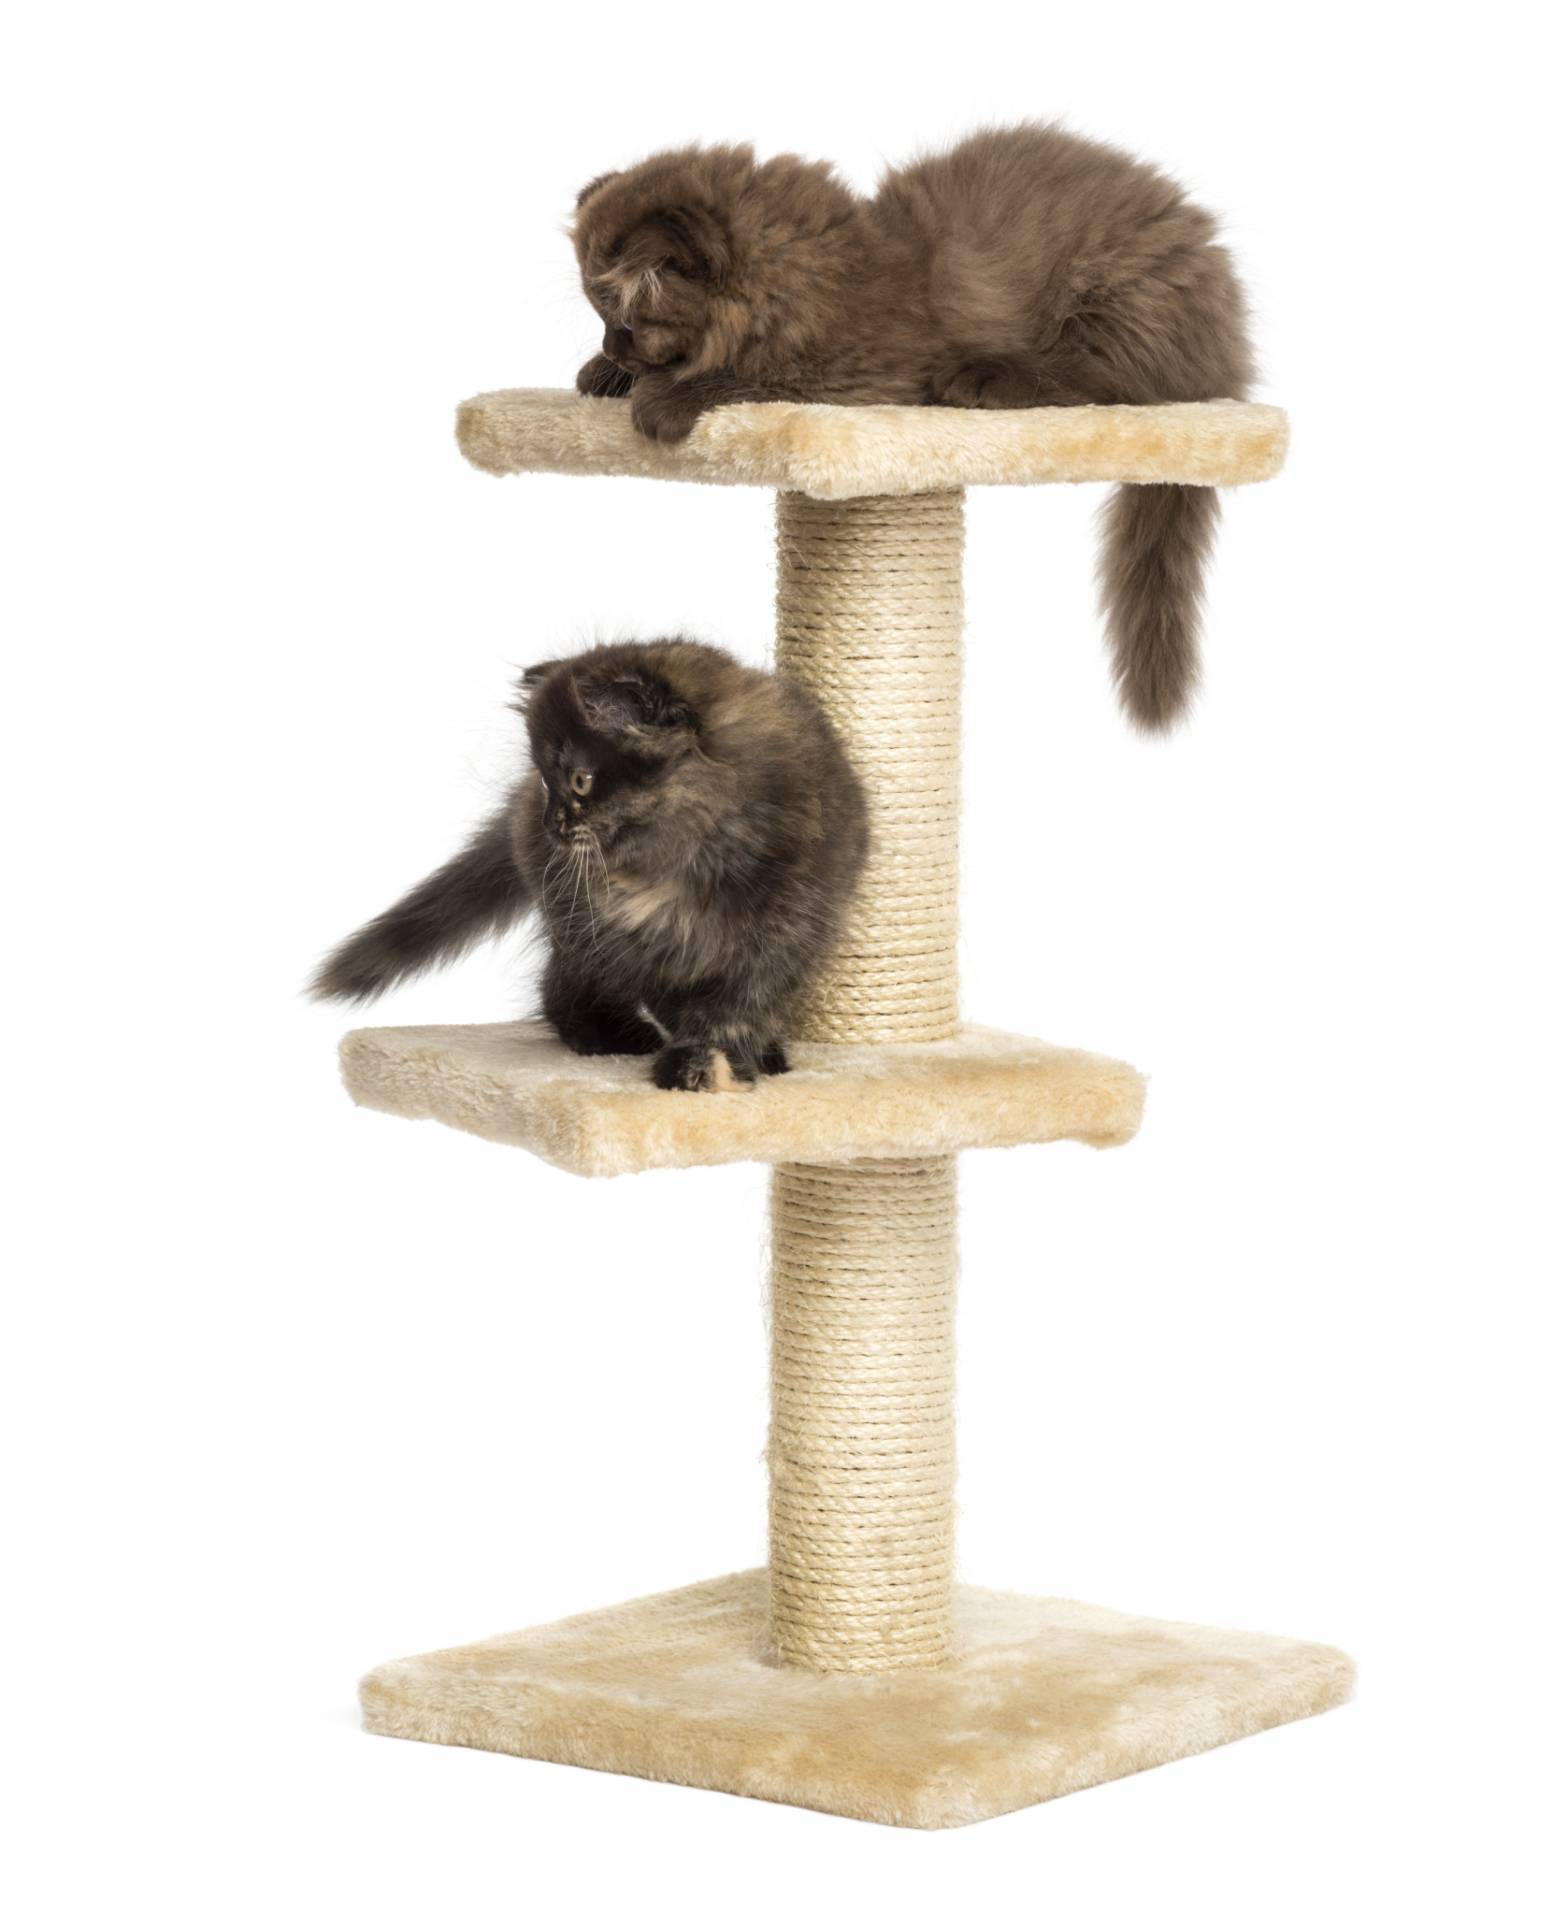 les meilleurs arbres chat pour grands chats et maine coon. Black Bedroom Furniture Sets. Home Design Ideas